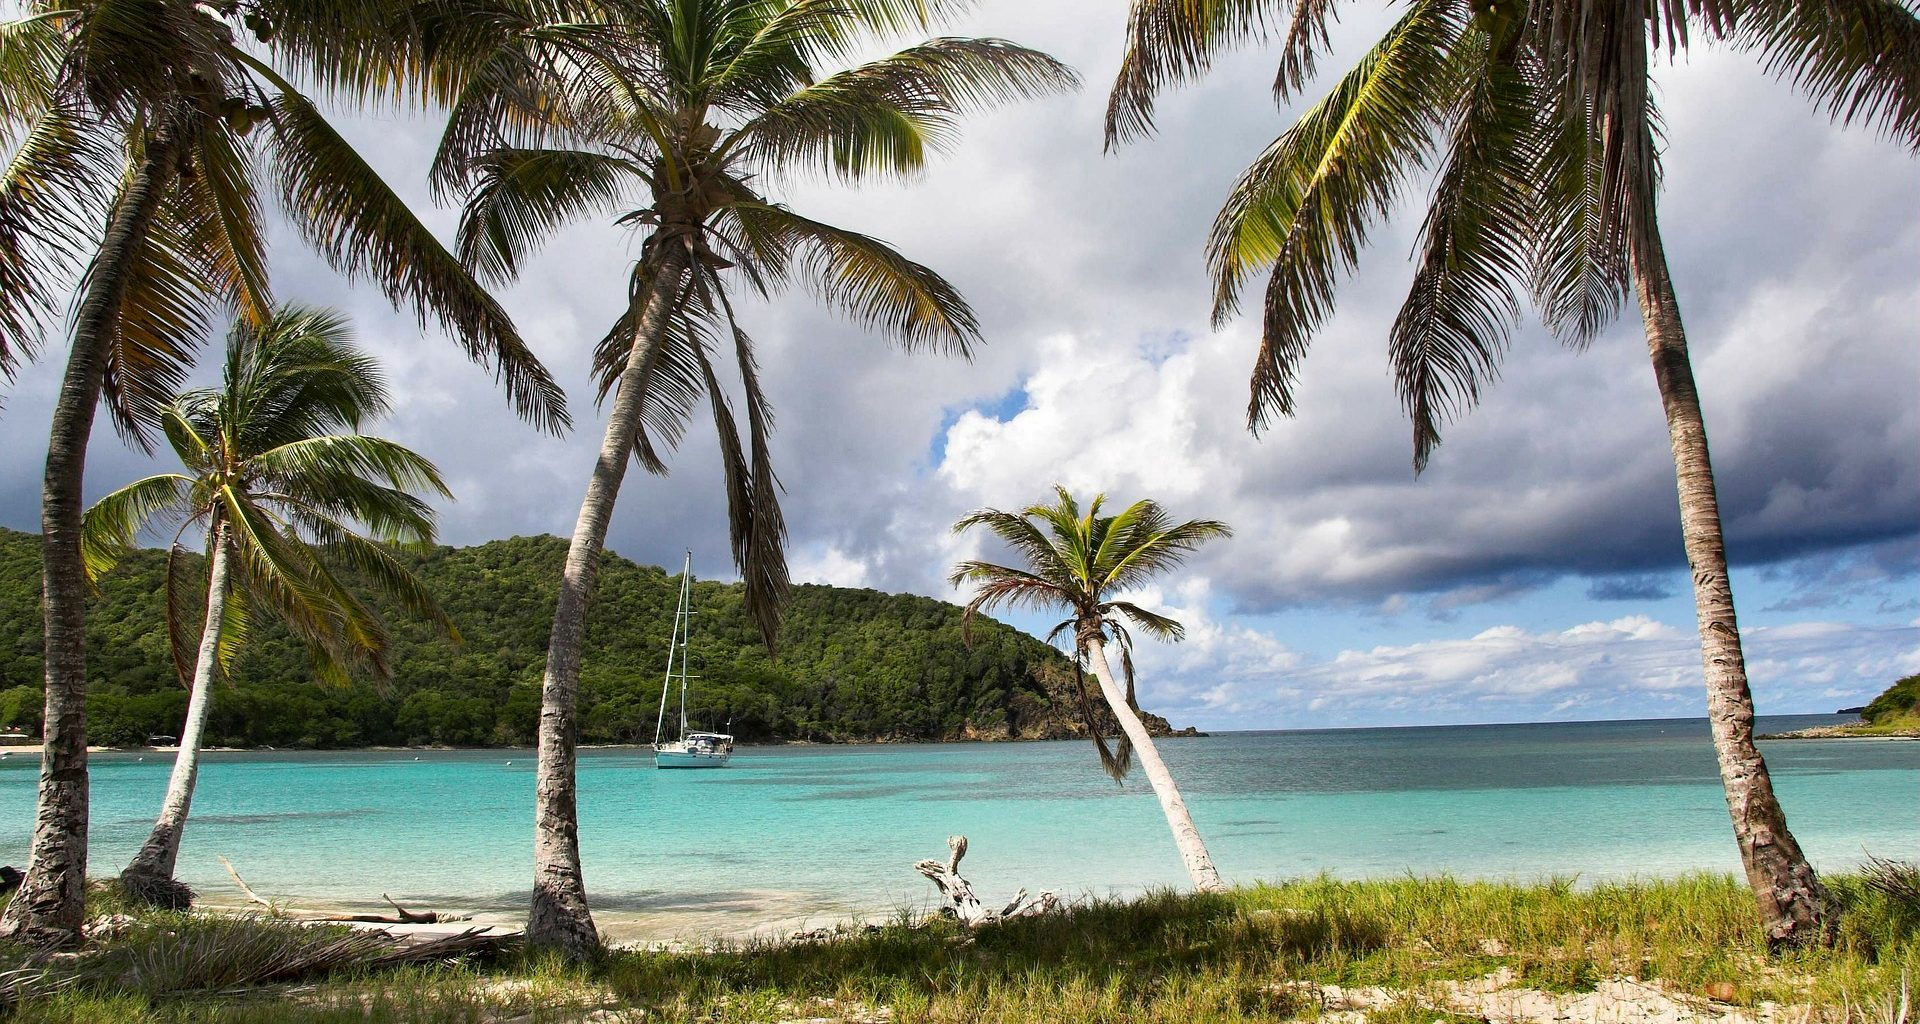 trees and beach in st. vincent honeymoon